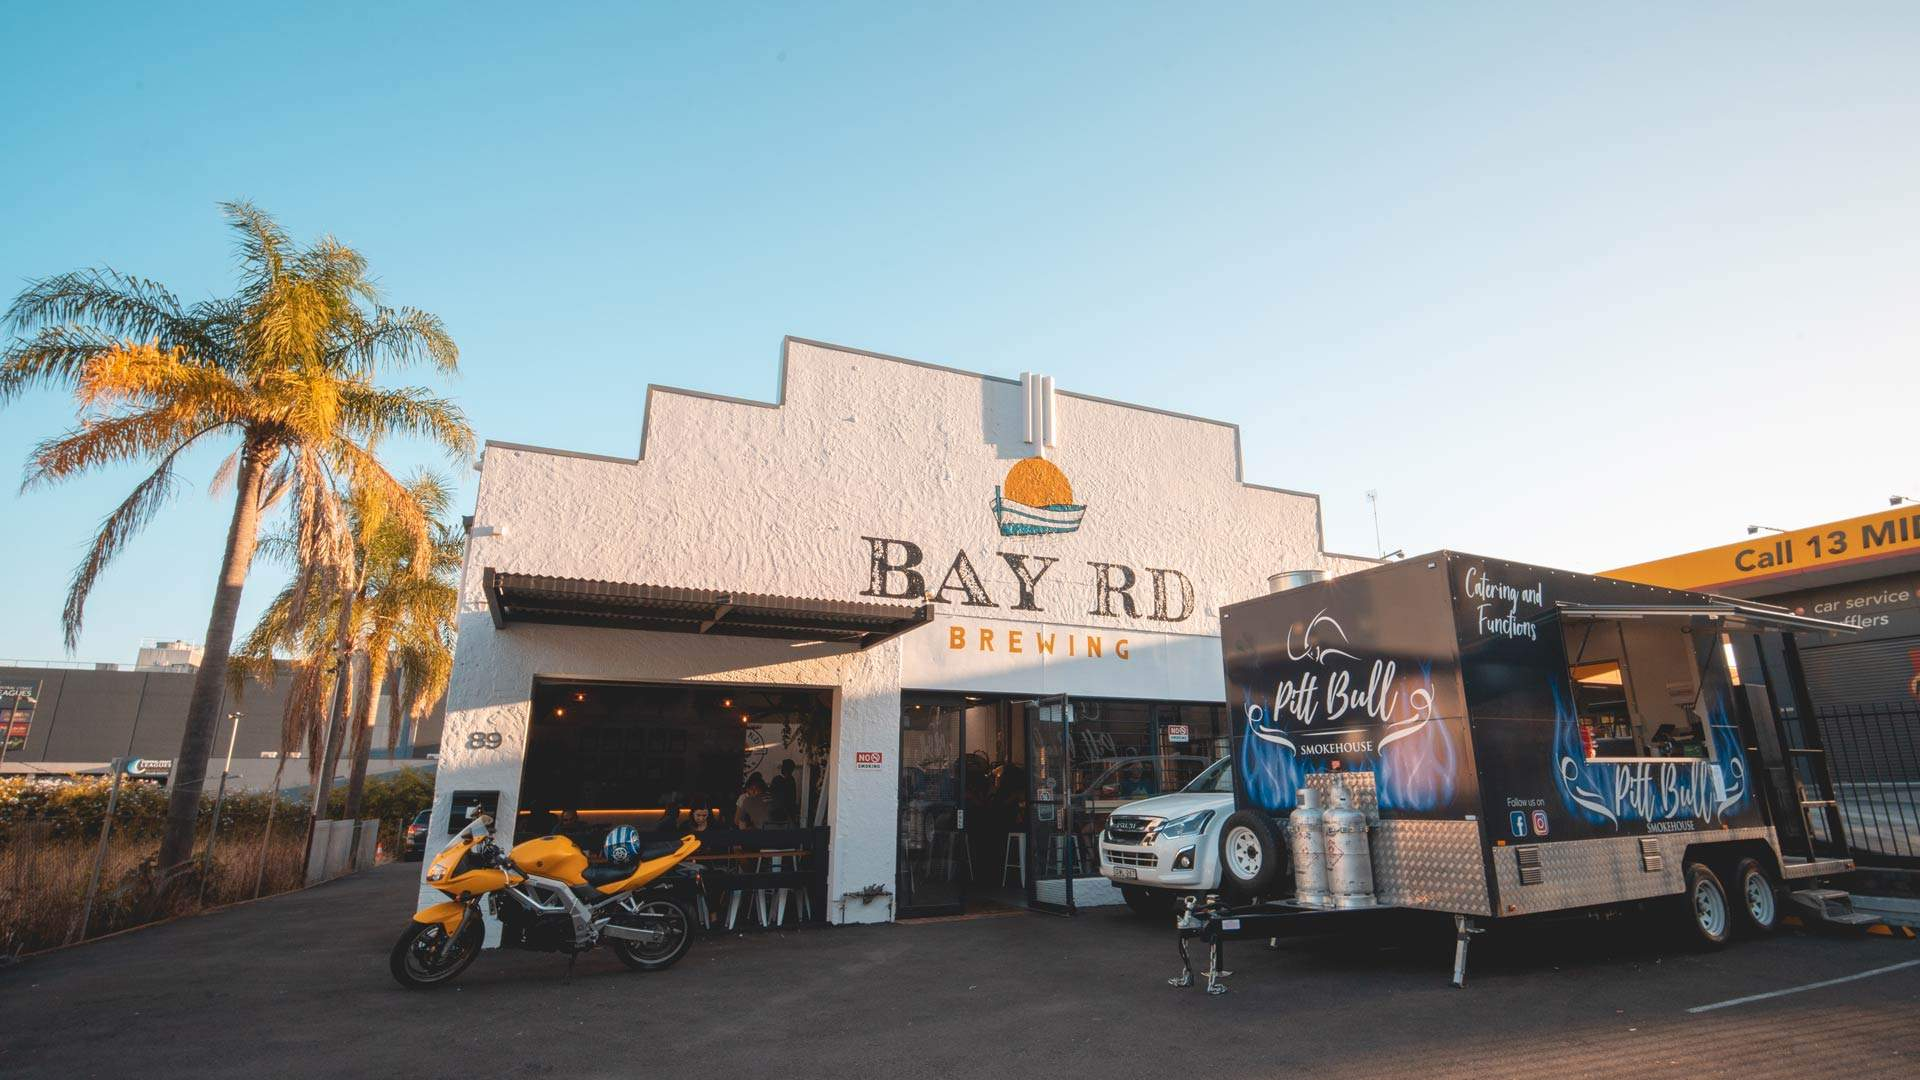 Bay Rd Brewing